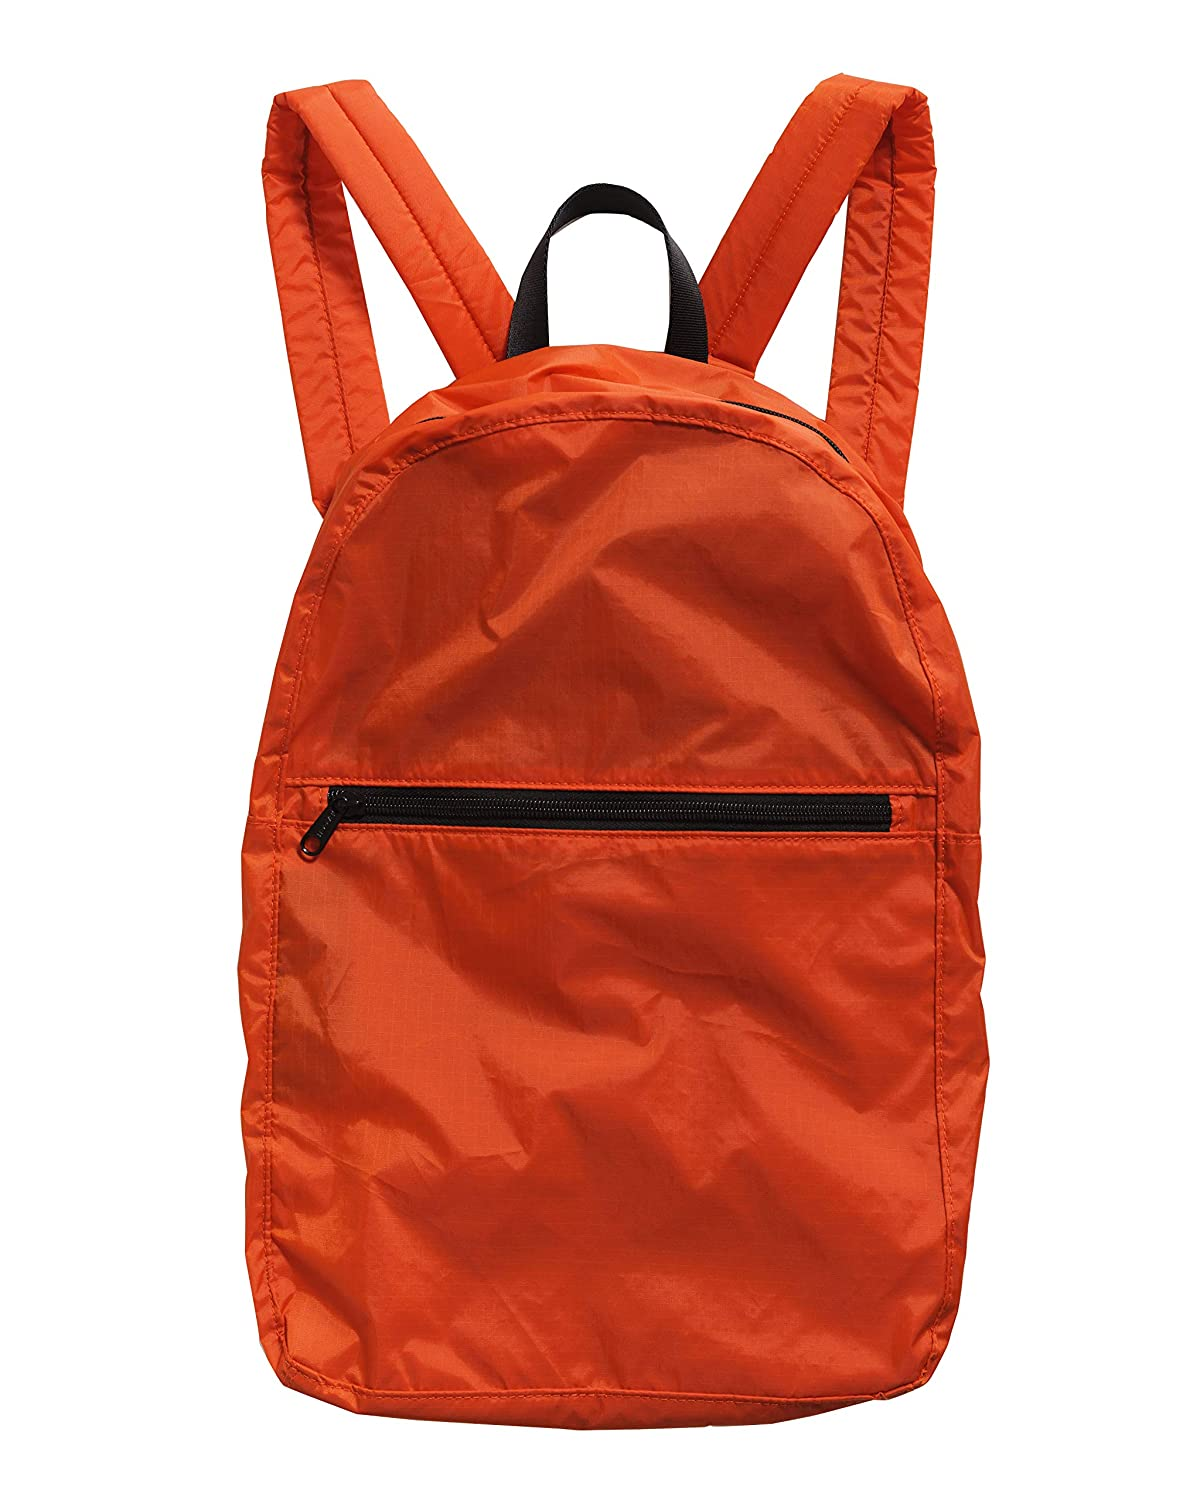 BAGGU Ripstop Nylon Backpack, Lightweight Packable Backpack Ideal for Travel or the Gym, Tomato